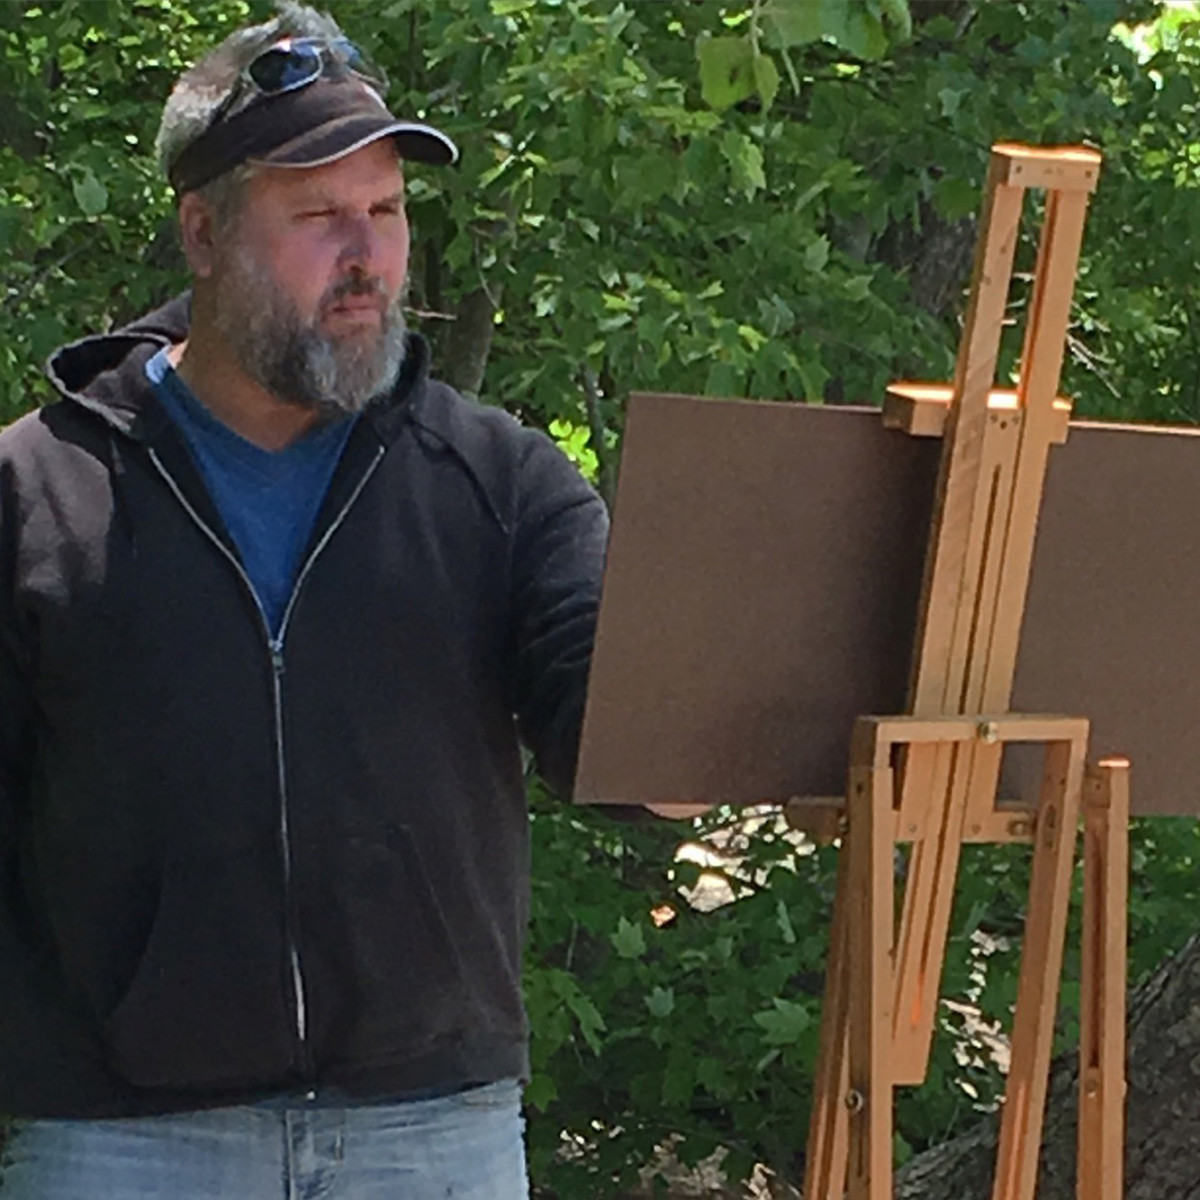 The artist Shawn Krueger paints on the shore of the French Broad River in Weaverville, North Carolina.